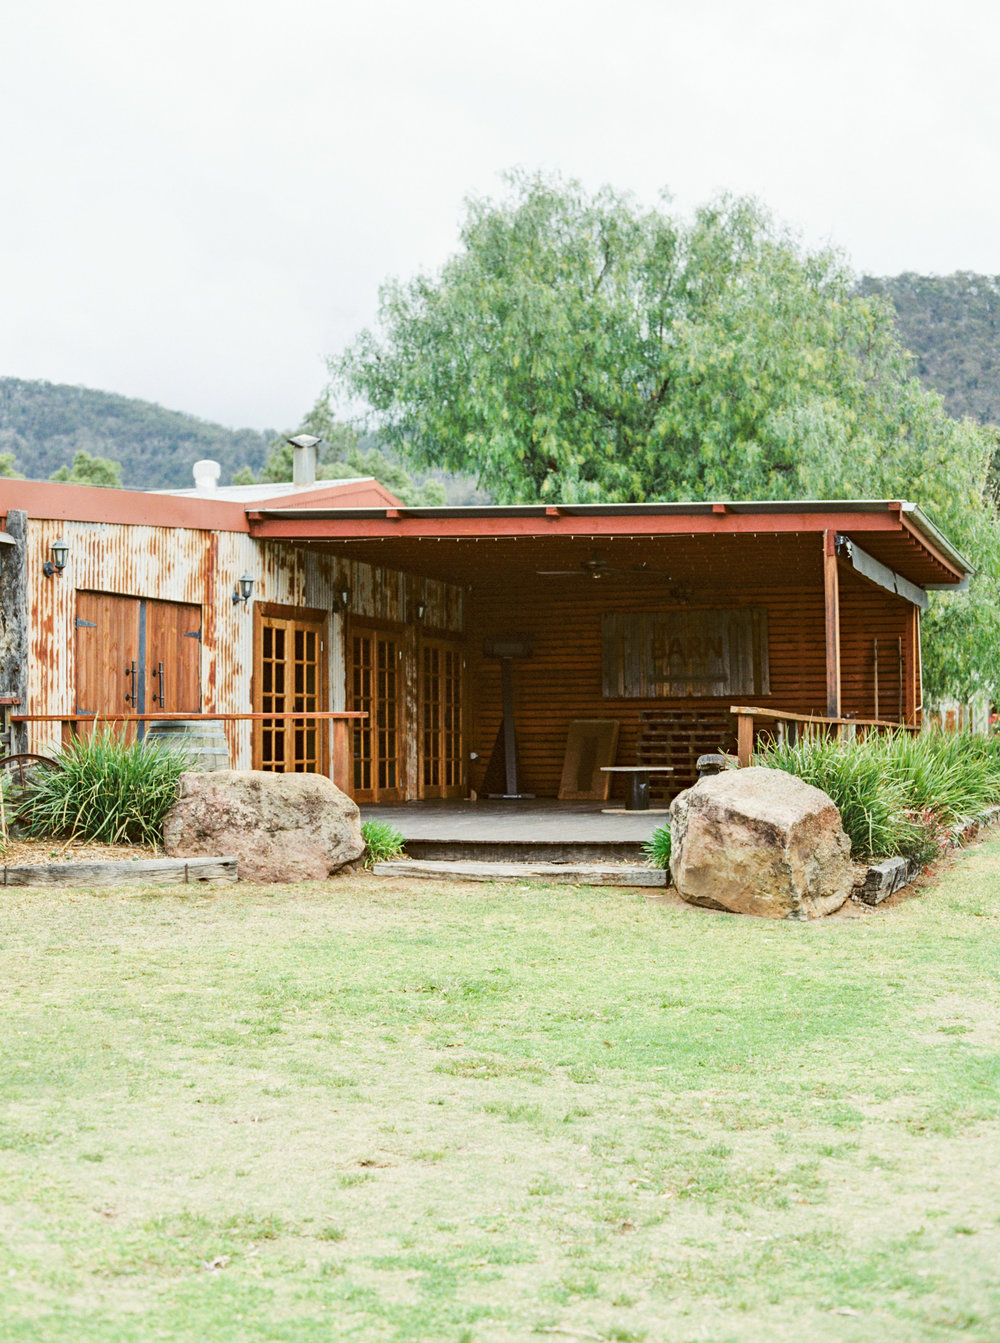 00012- Fine Art Film Hunter Valley Mudgee Destination Wedding Photographer Sheri McMahon.jpg